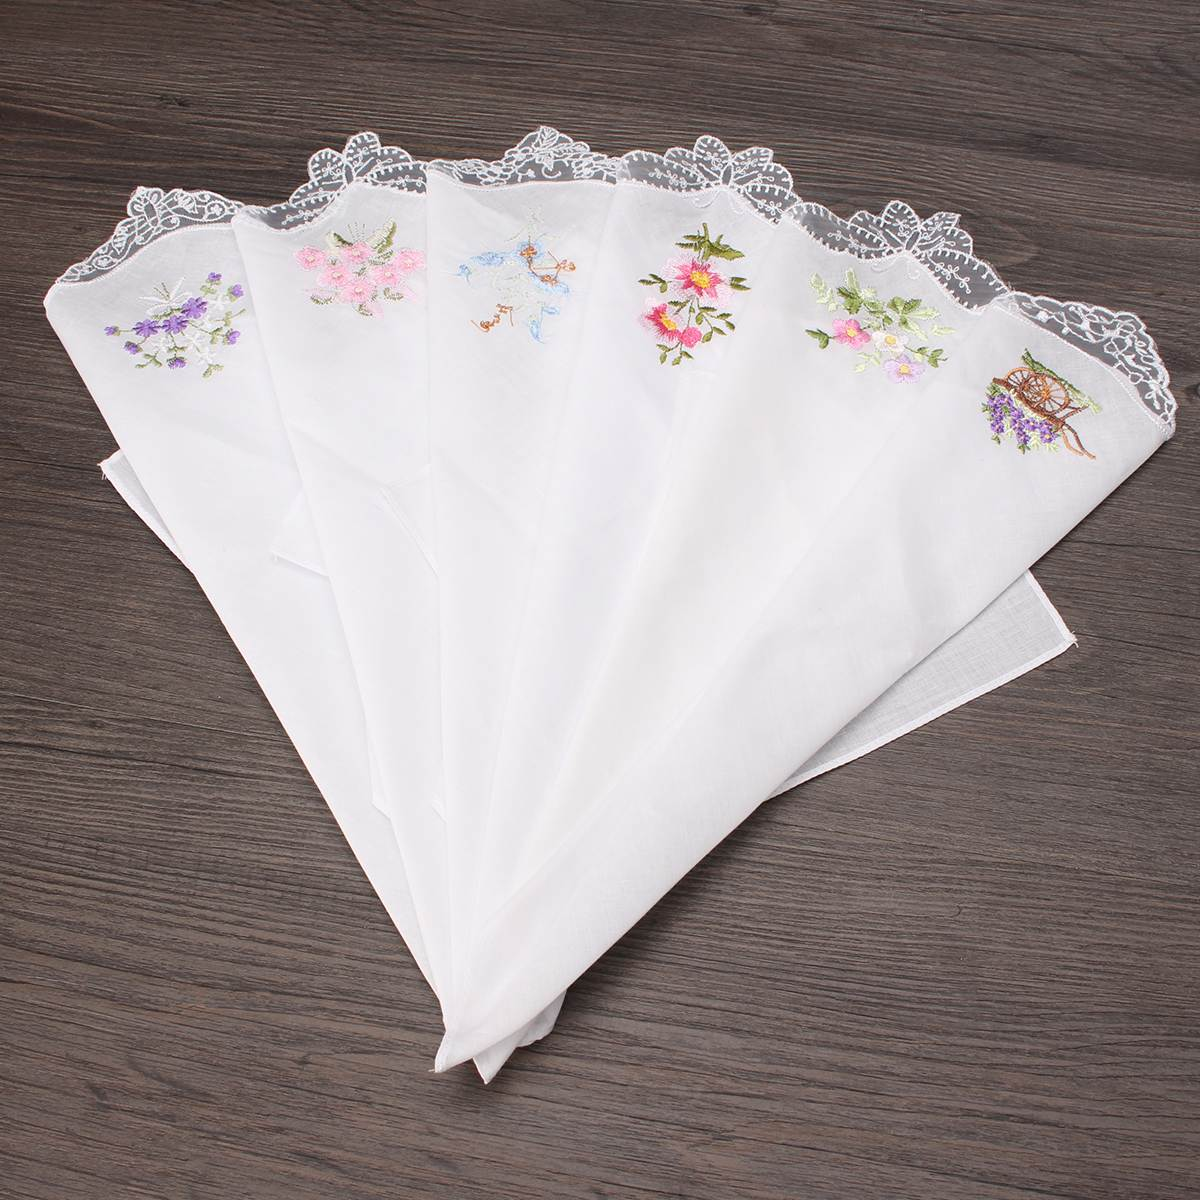 6 Pcs/lot 100% Cotton Flower Handkerchiefs For Women 28*28cm Napkin Embroidered Floral Wash Hand Square Towels Ladies Lace Hanky